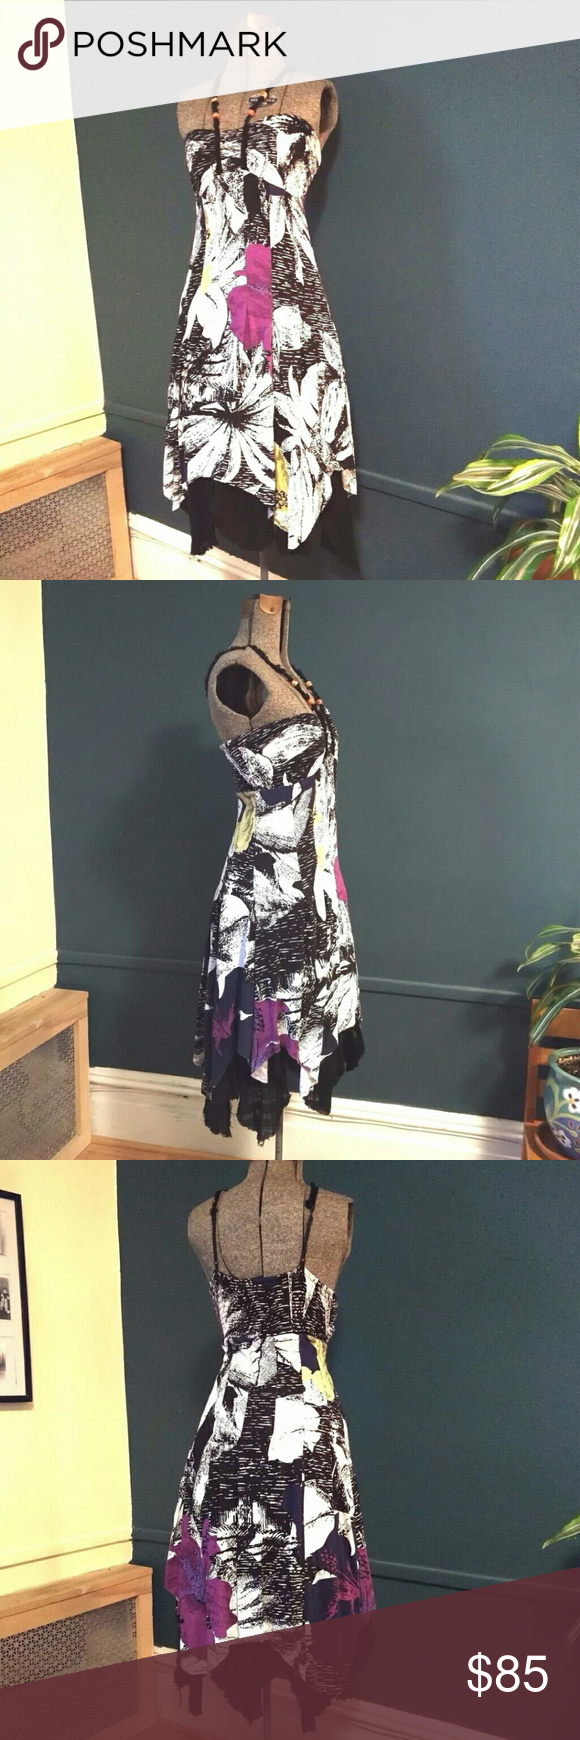 Free People Tattered Shred Multicolor Boho Dress M Free People Tattered Up Shred Multicolor Boho Slip Dress M Rare   Lined?   Excellent?Preowned Condition   Smoke and Pets Free House   Will ship within 24 hours from cleared payment Free People Dresses Asymmetrical